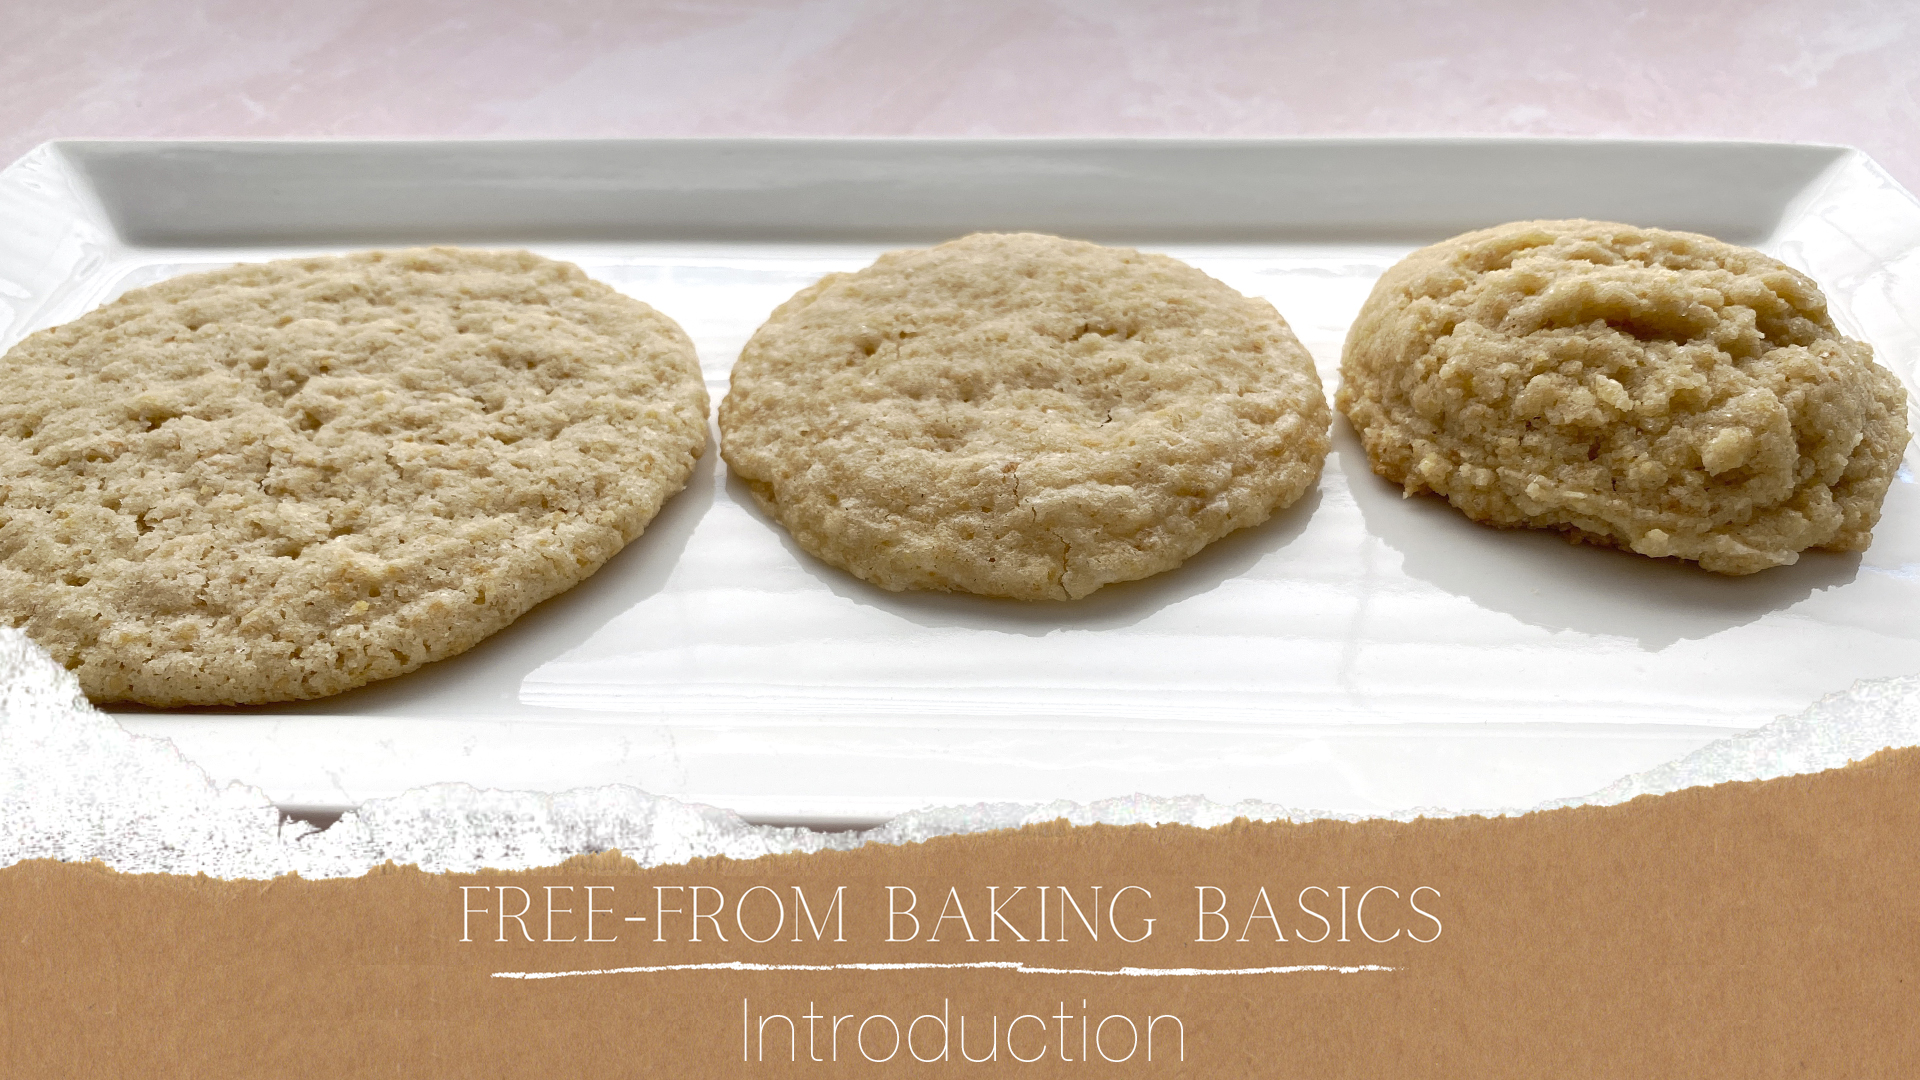 Free From Baking Basics